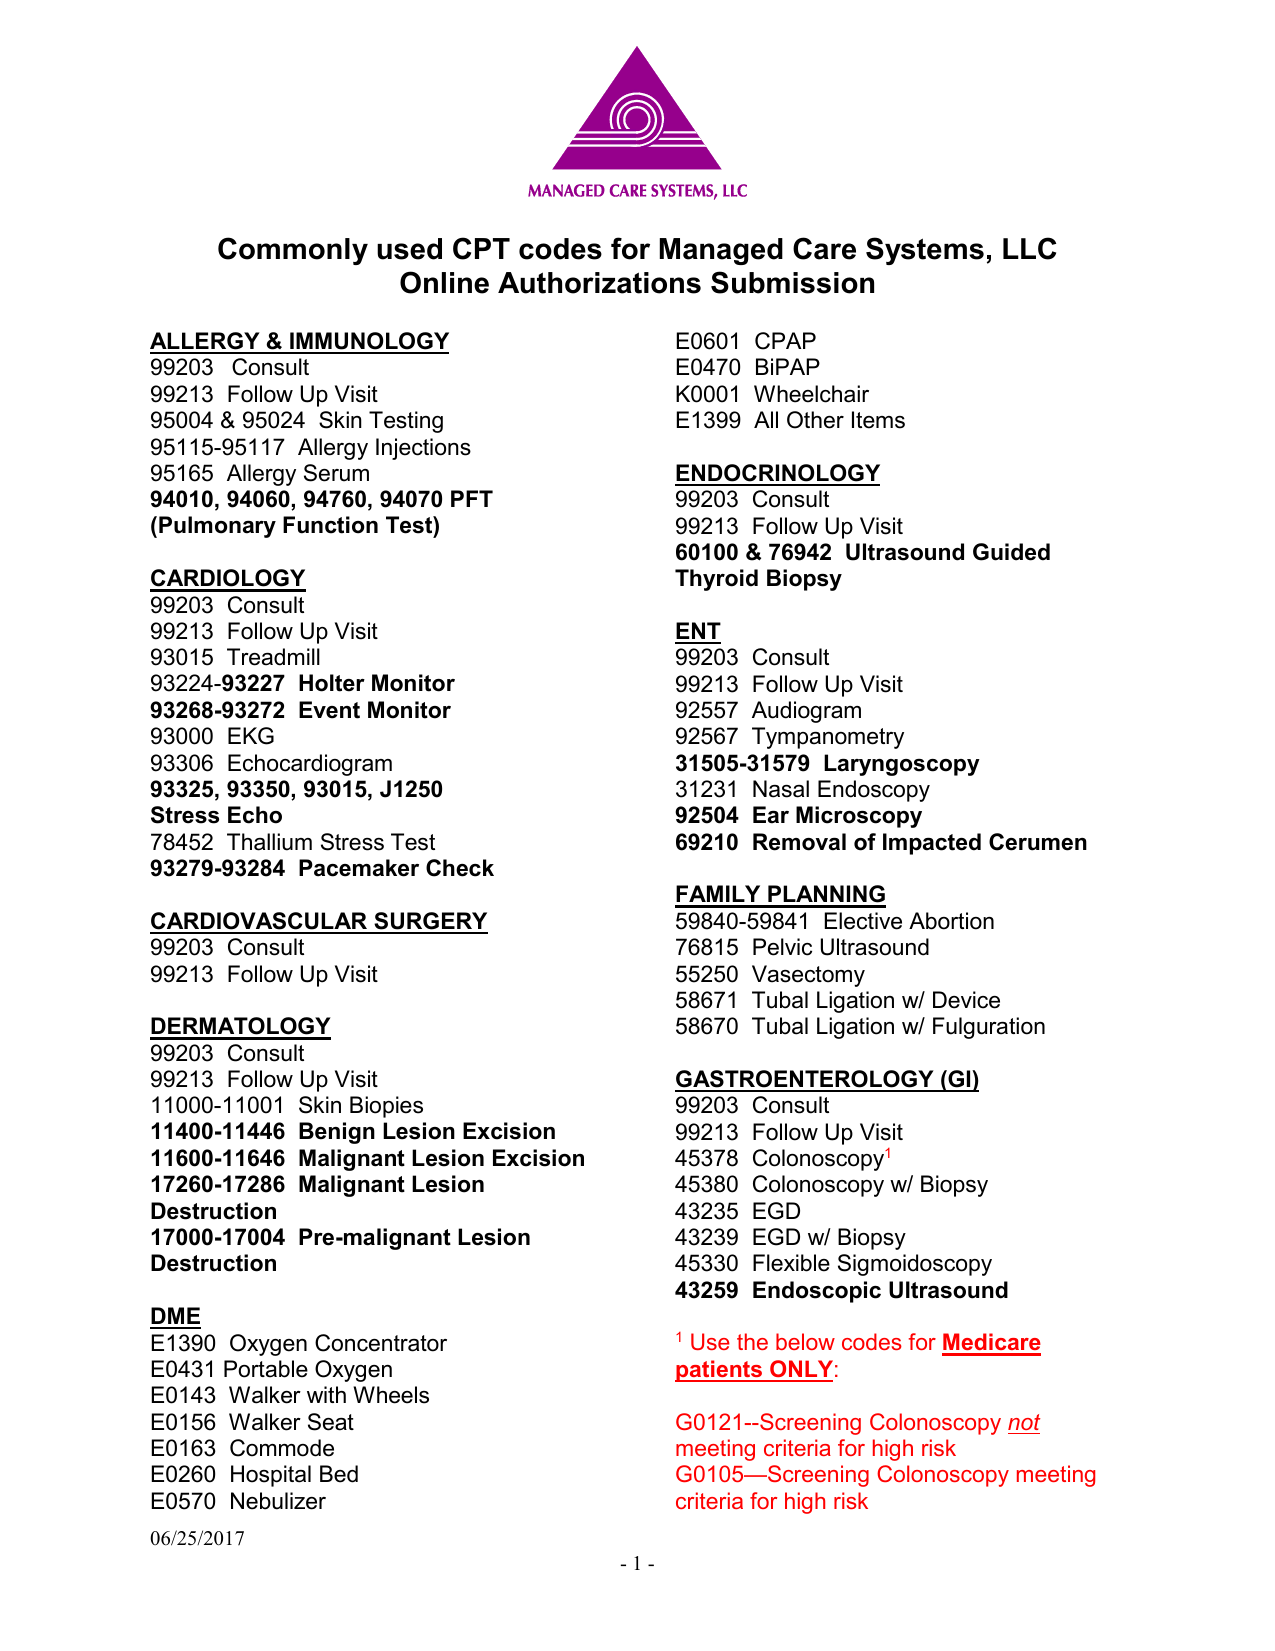 Cpt Codes Managed Care Systems